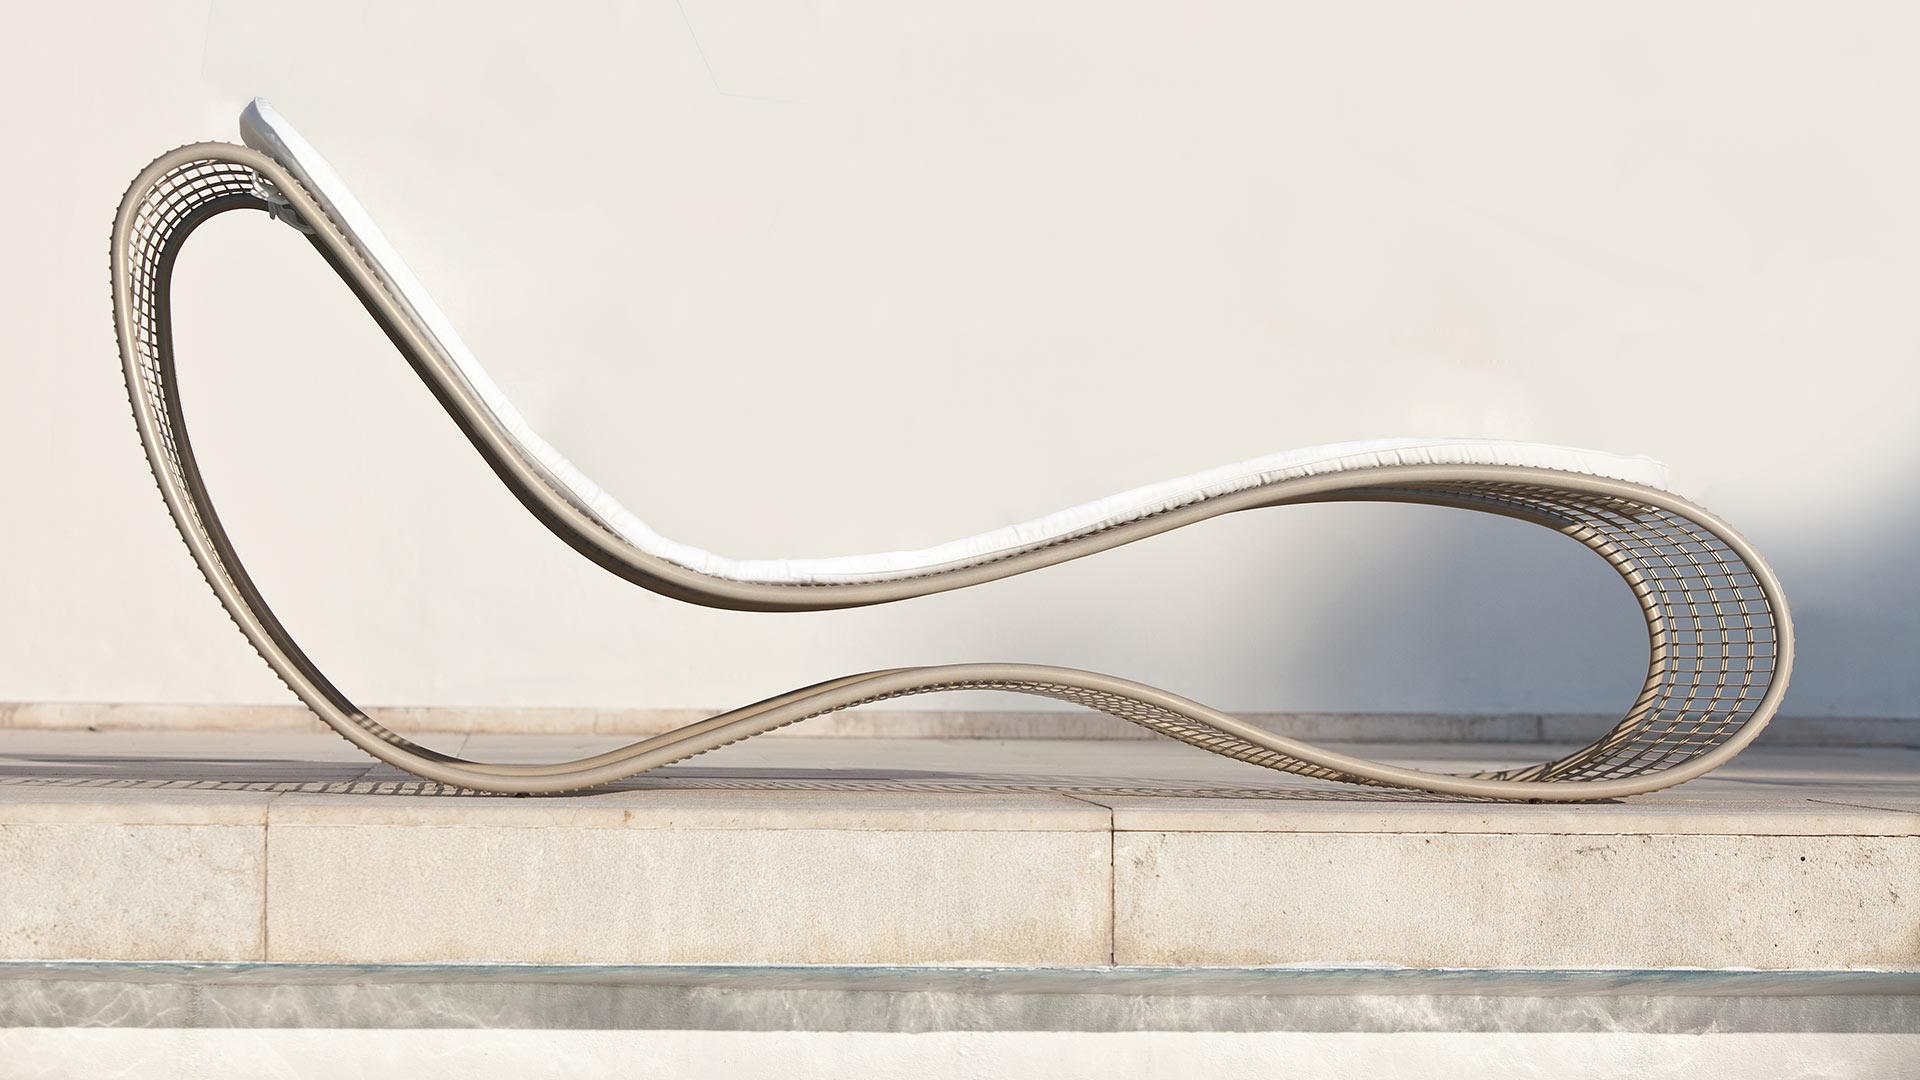 Sinuo chaise longue da esterno - Italy Dream Design